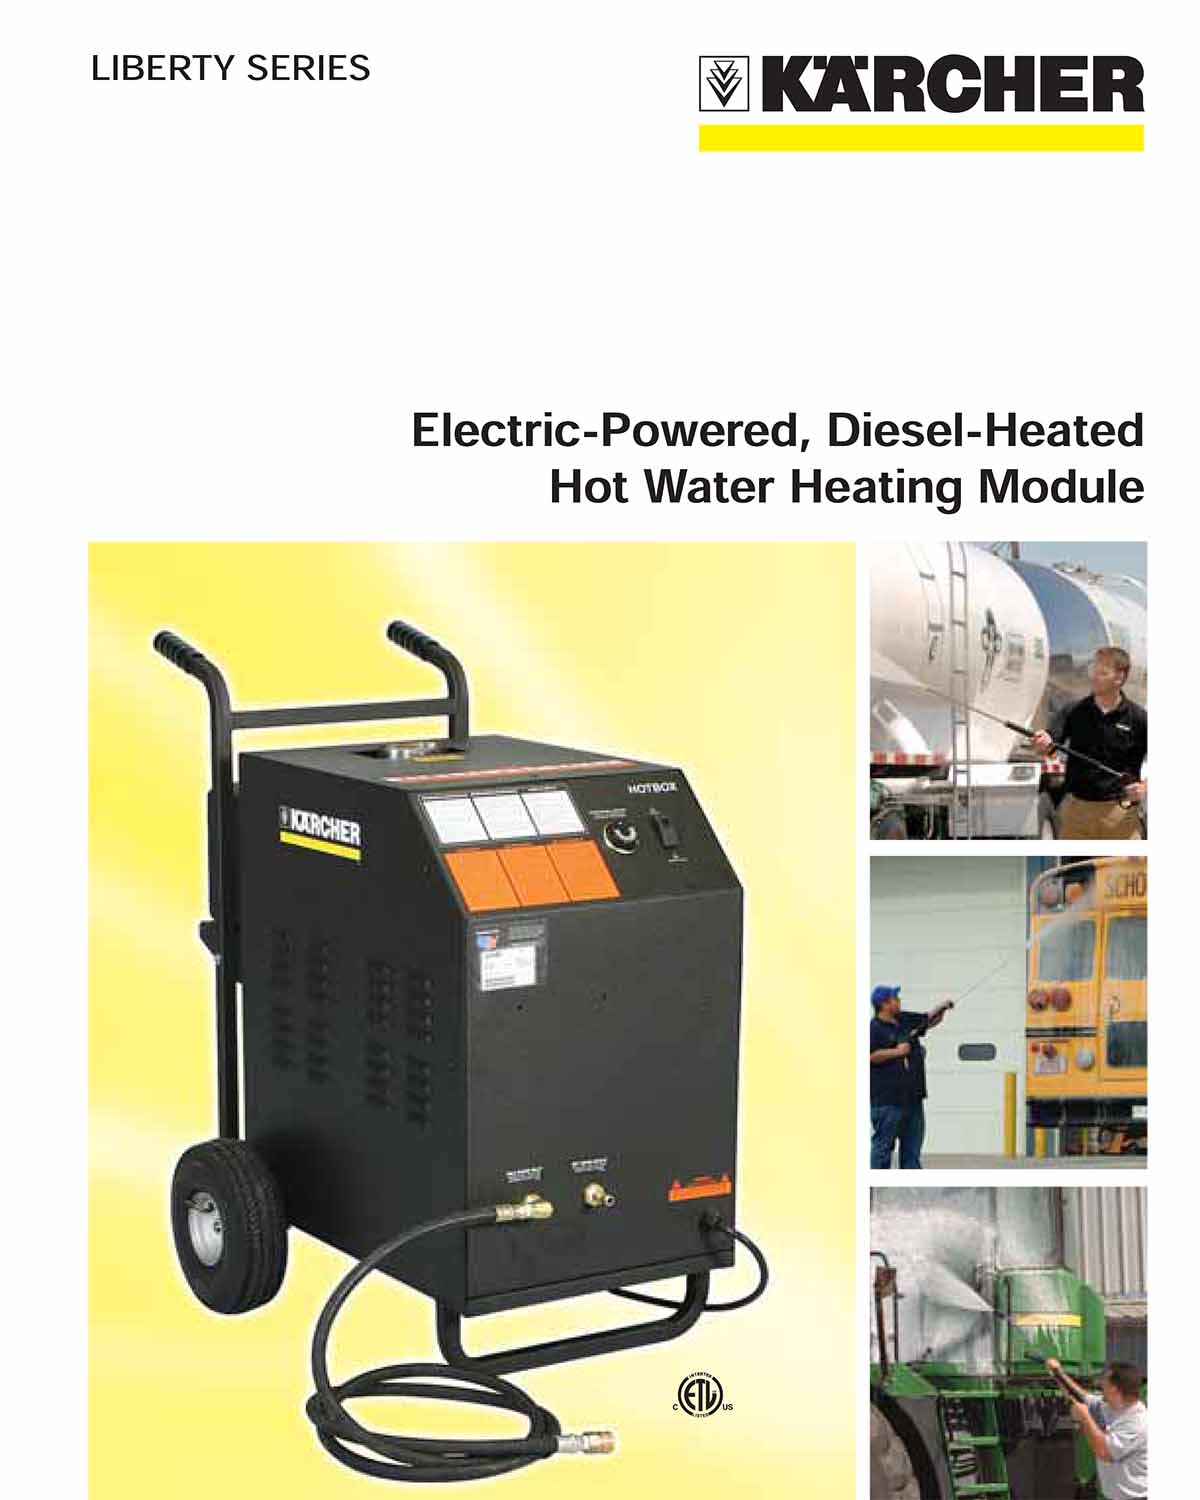 Karcher Electric Powered Hot Water Heating Module